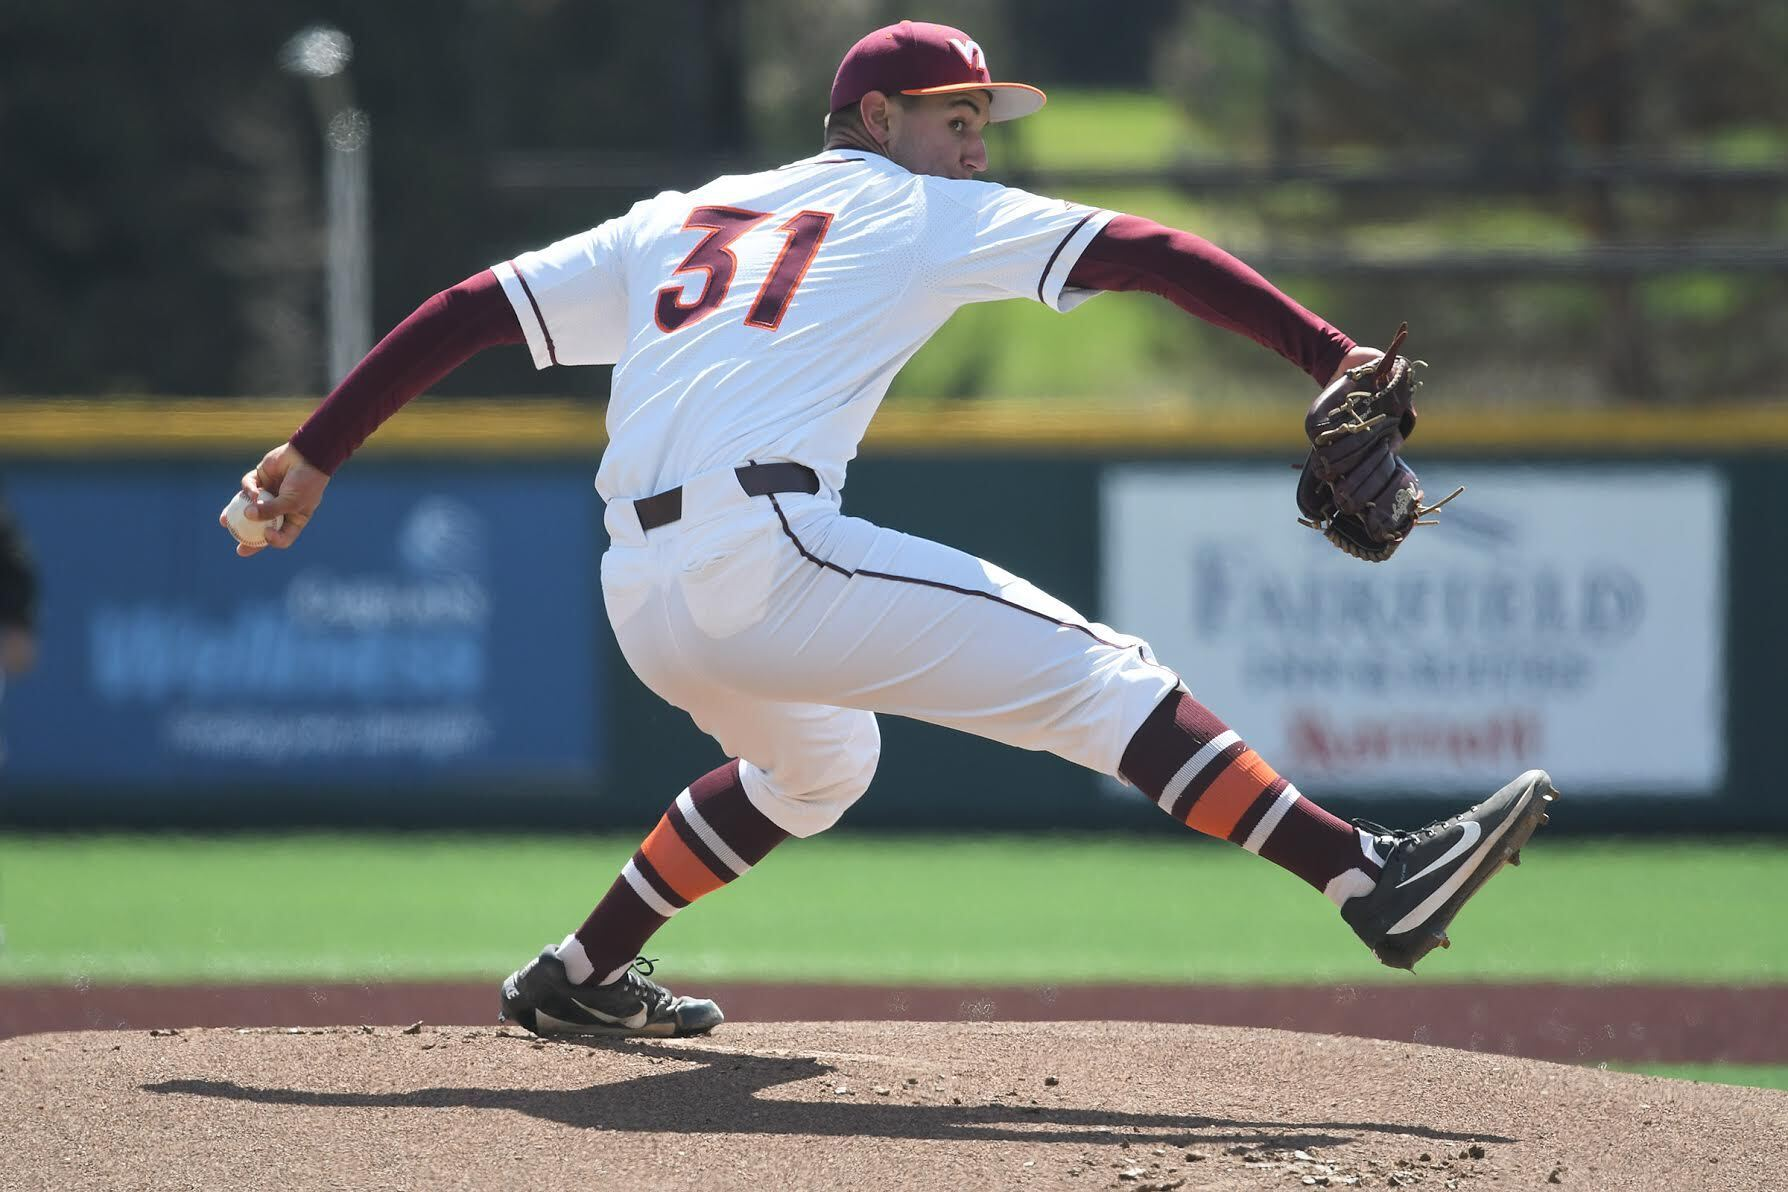 Virginia Tech's Ian Seymour Selected 57th Overall by Tampa Bay in the 2020 MLB Draft